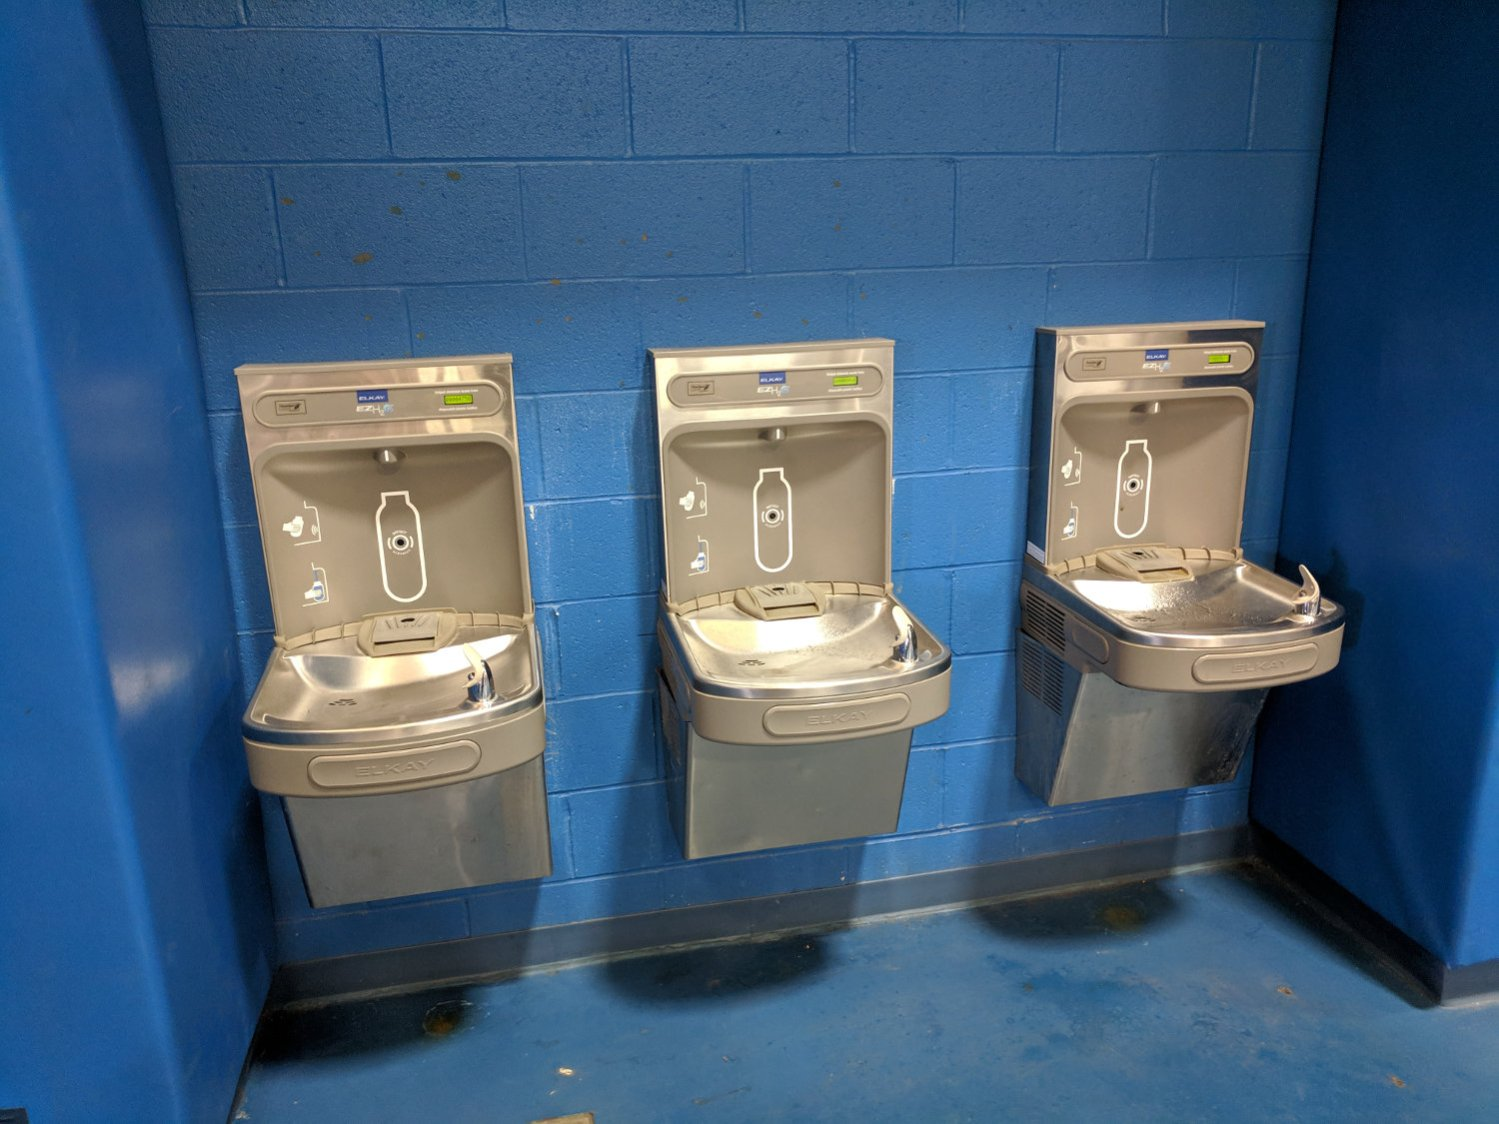 Gym water bottle refill station A - overview